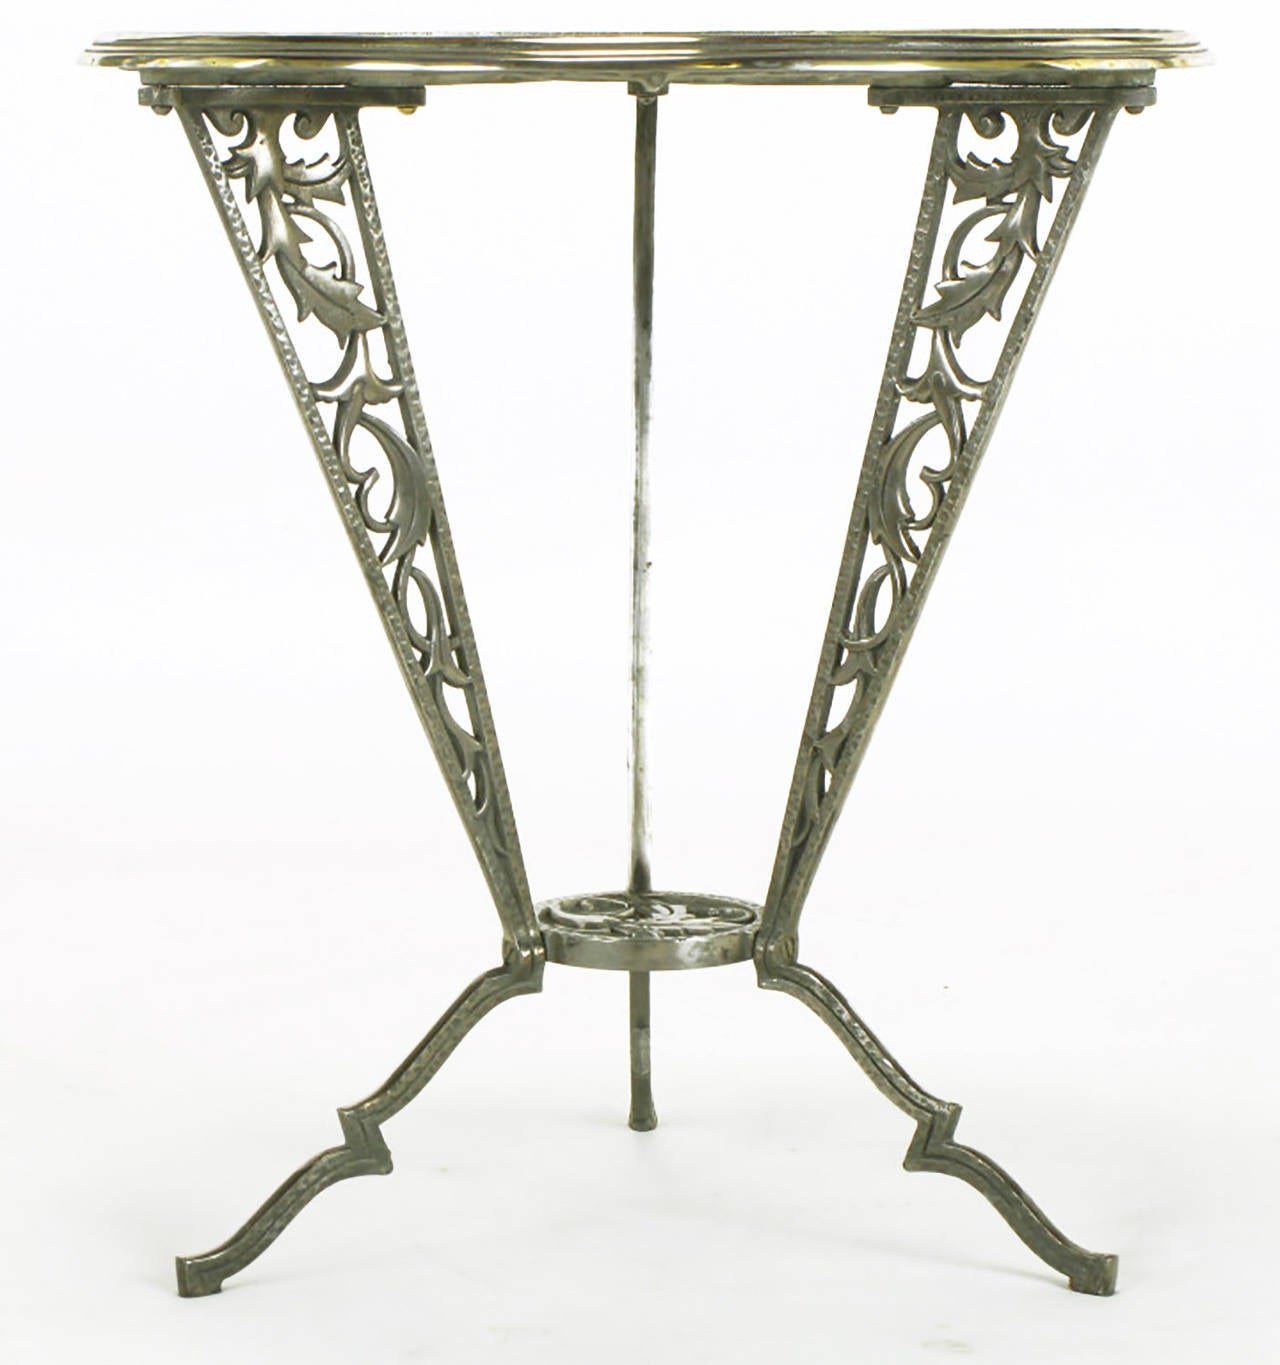 Rena Rosenthal Cast Metal Art Deco Table In Excellent Condition For Sale In Chicago, IL